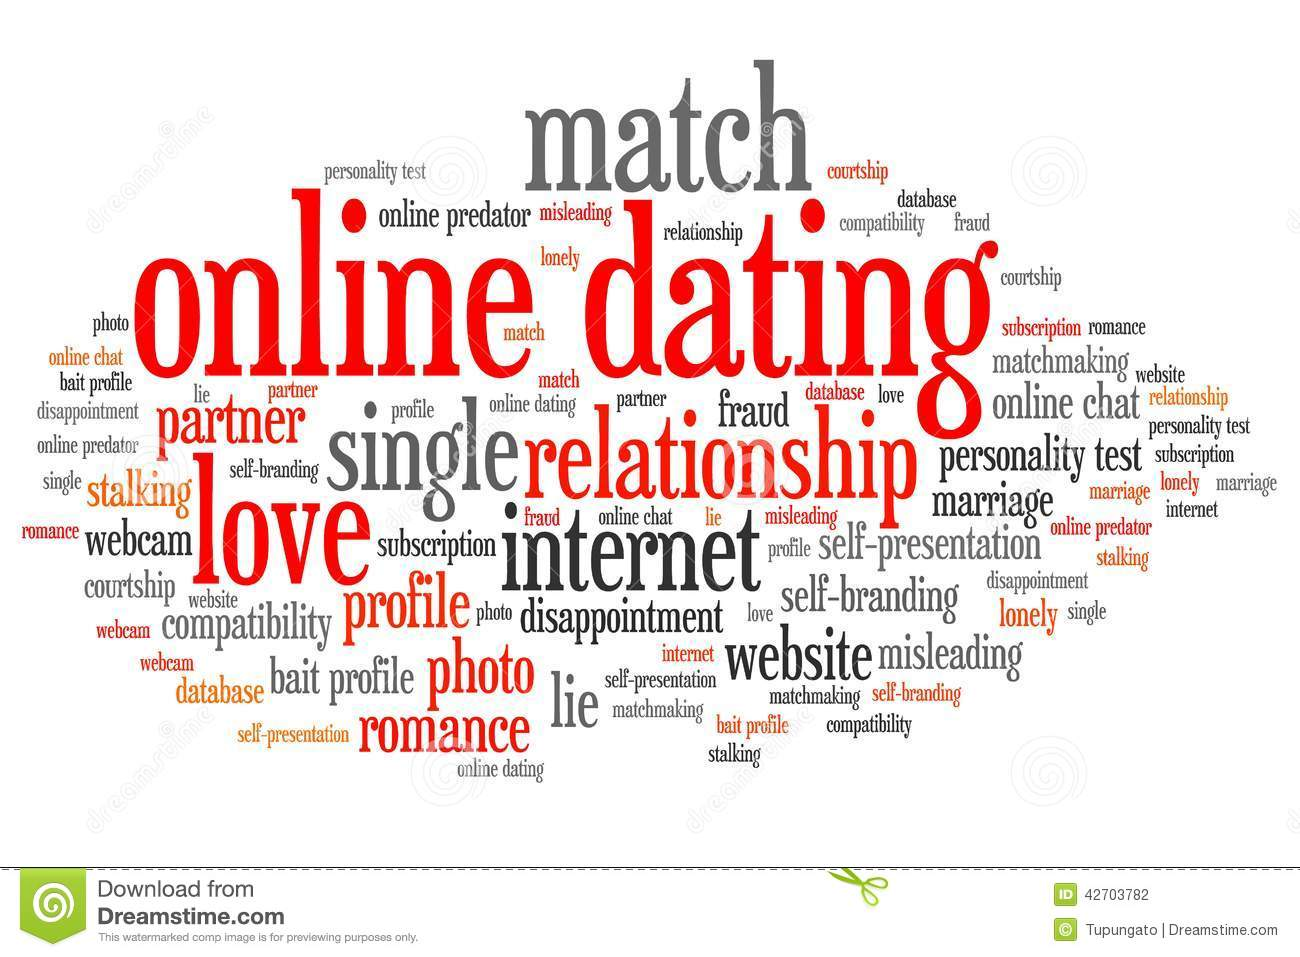 richfield online hookup & dating This code is also available online for free in pdf format here: 2015 minnesota  state plumbing code i've paged through the new plumbing code,.